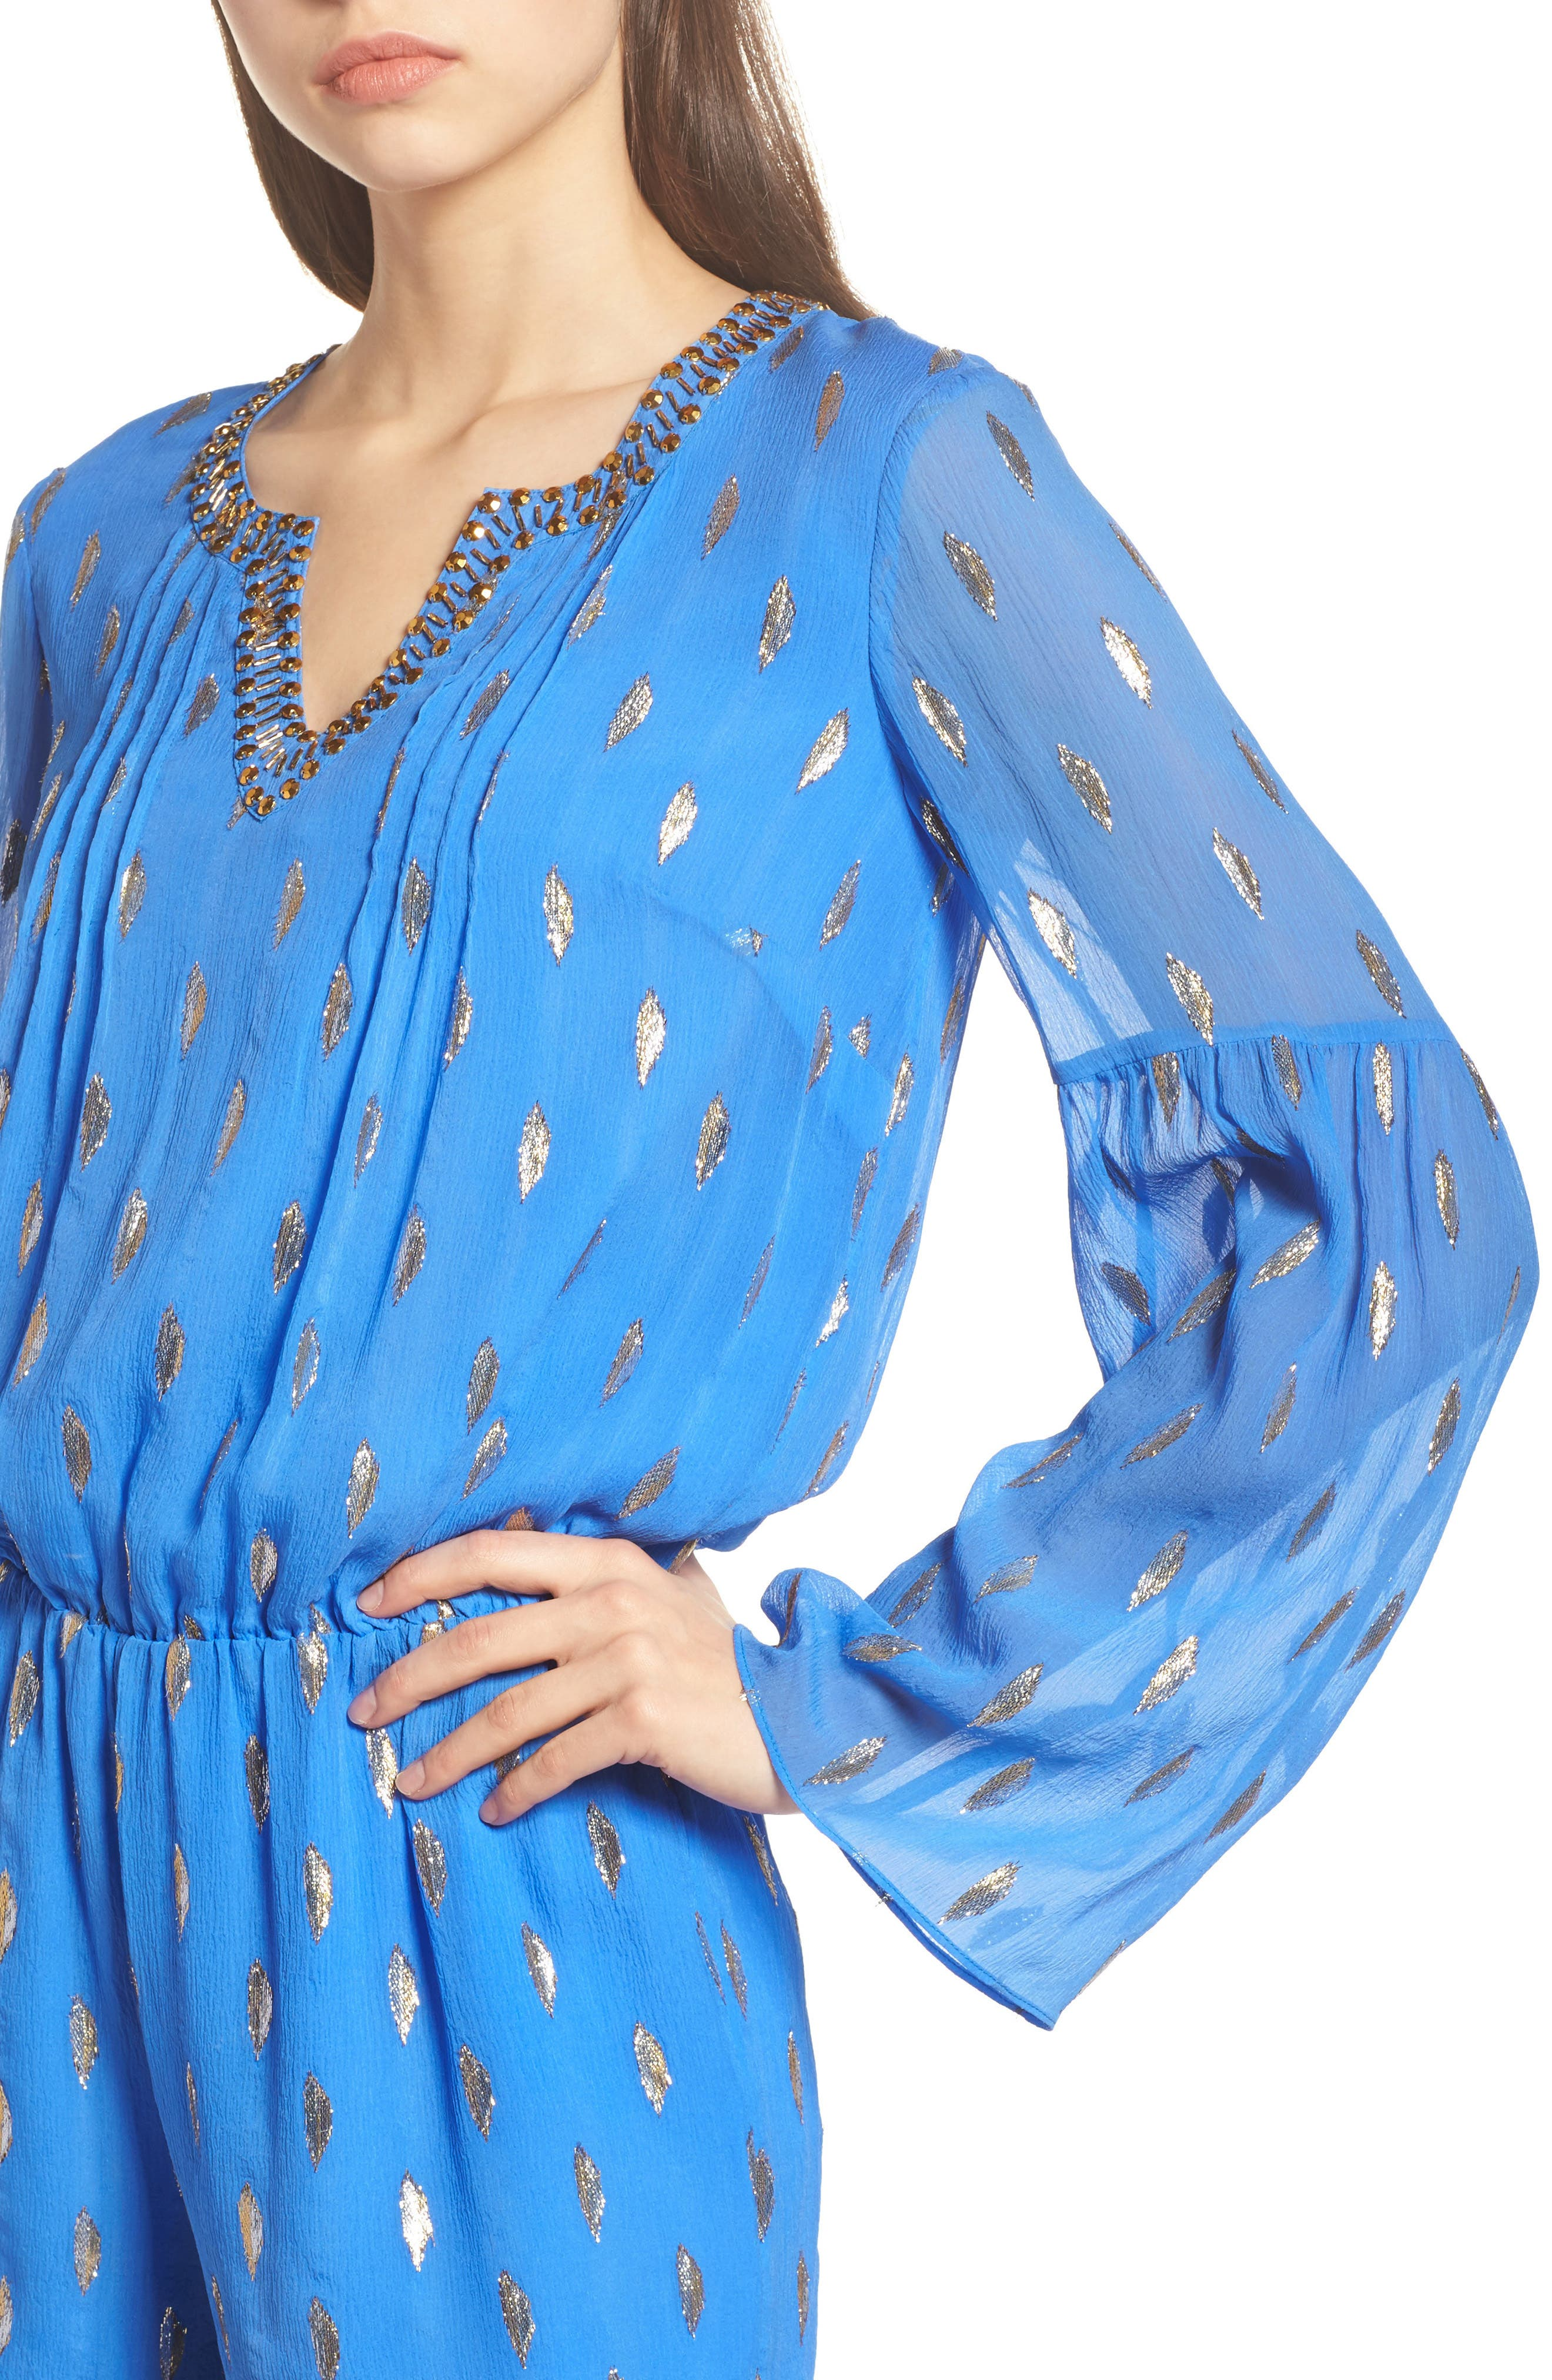 Ariele Silk Romper,                             Alternate thumbnail 4, color,                             Blue Diamond Metallic Clip